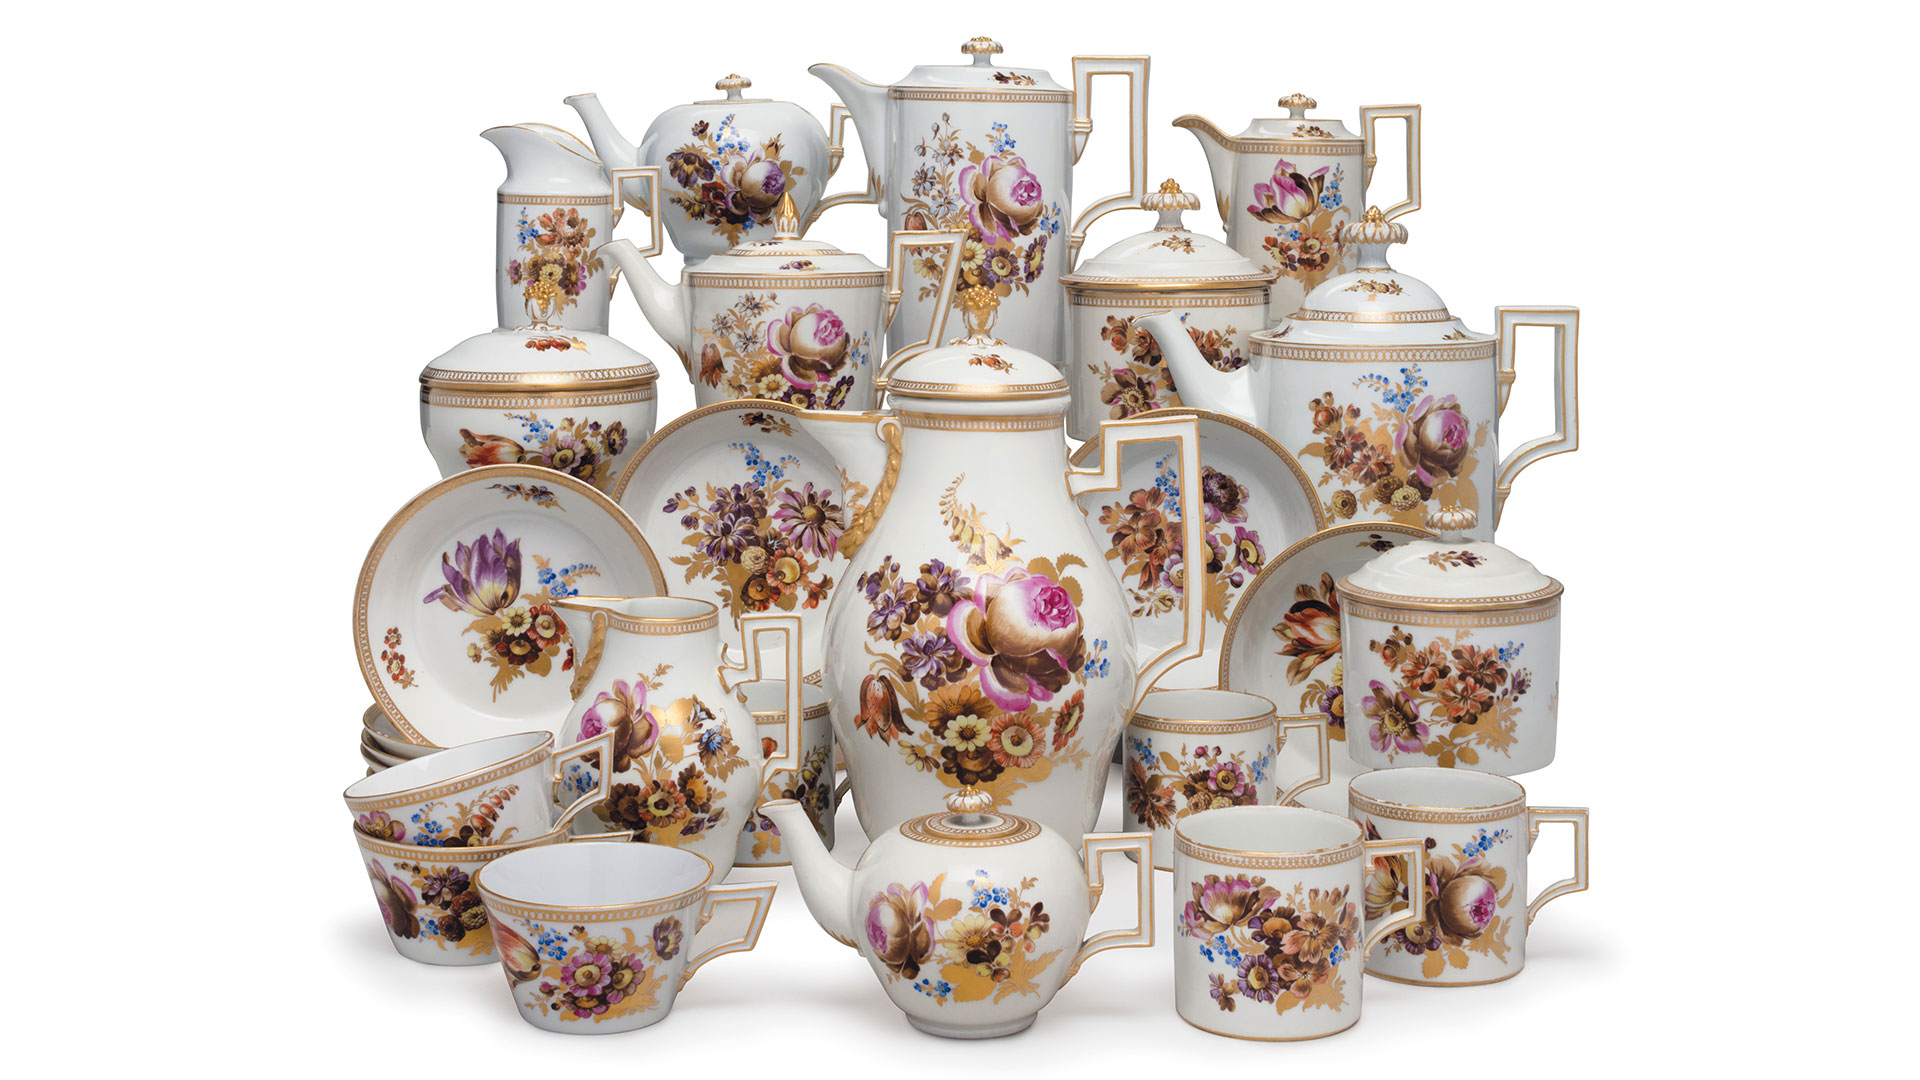 Southern Living Rockefeller Christies Auction Meissen Coffee Service